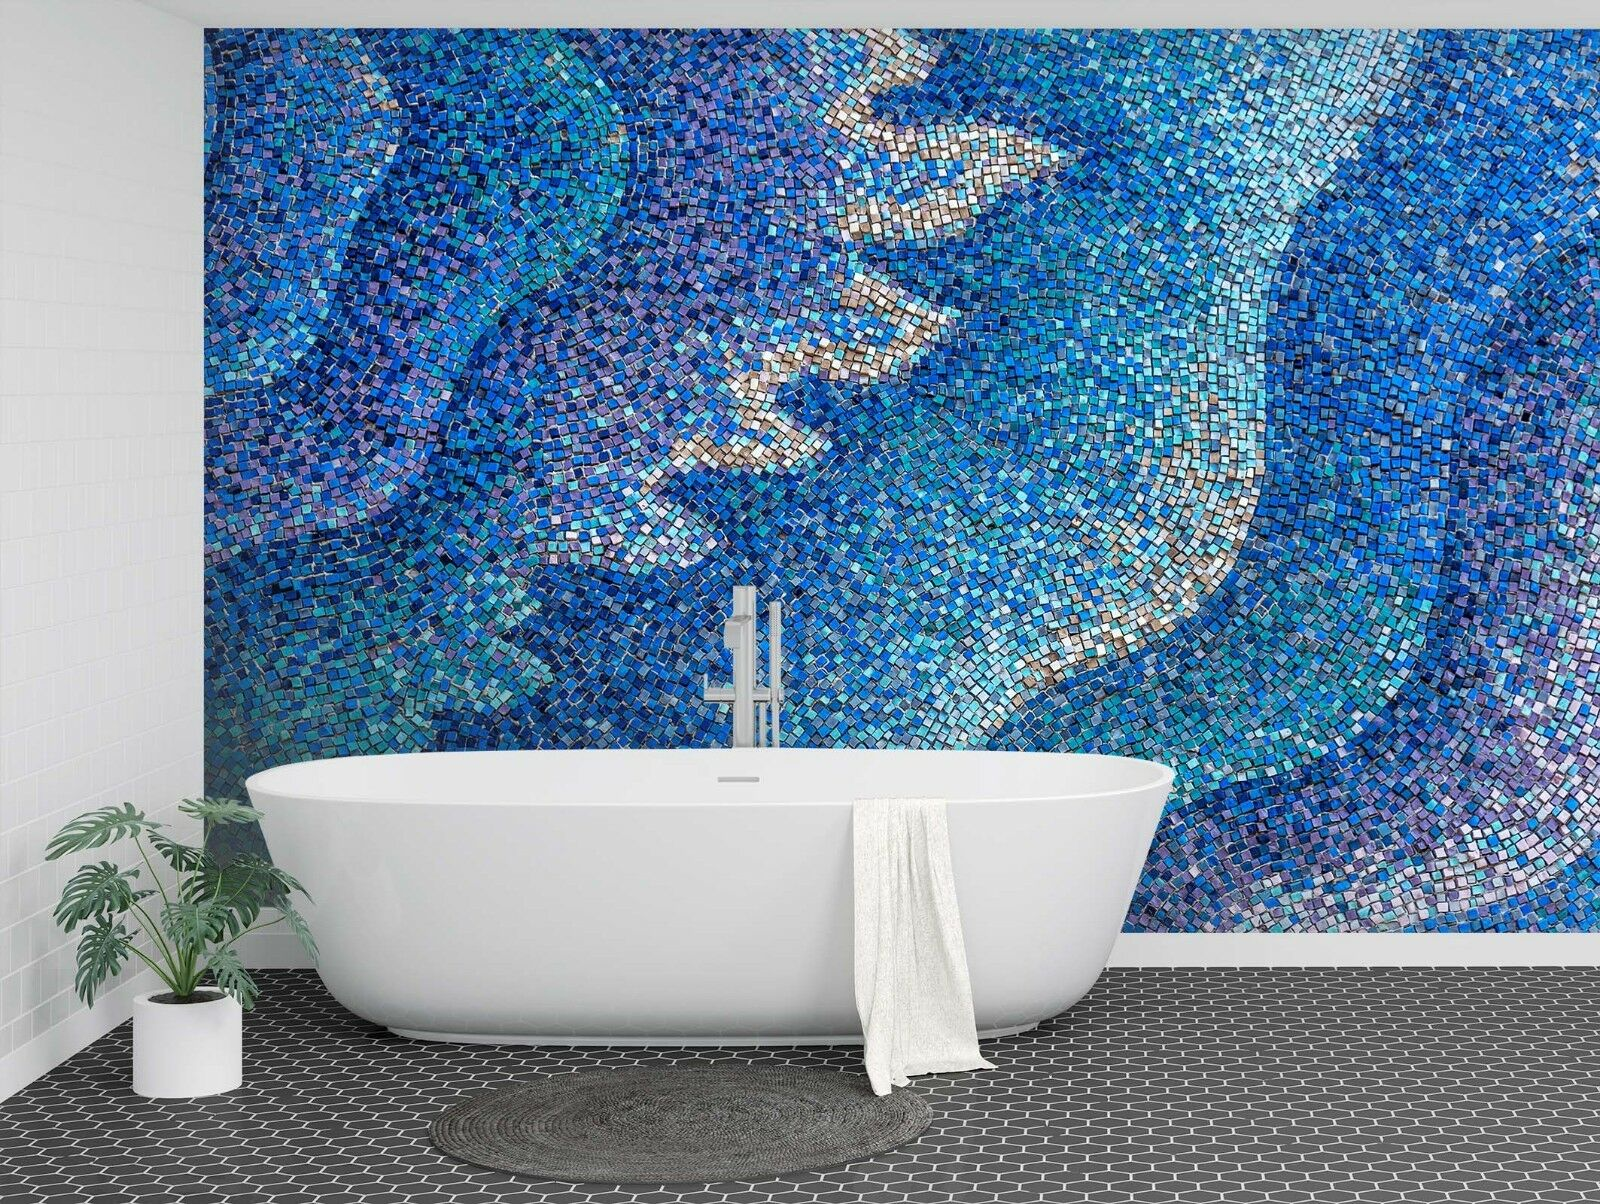 3D bluee Surf Squares 1 Texture Tiles Marble Wall Paper Decal Wallpaper Mural AJ